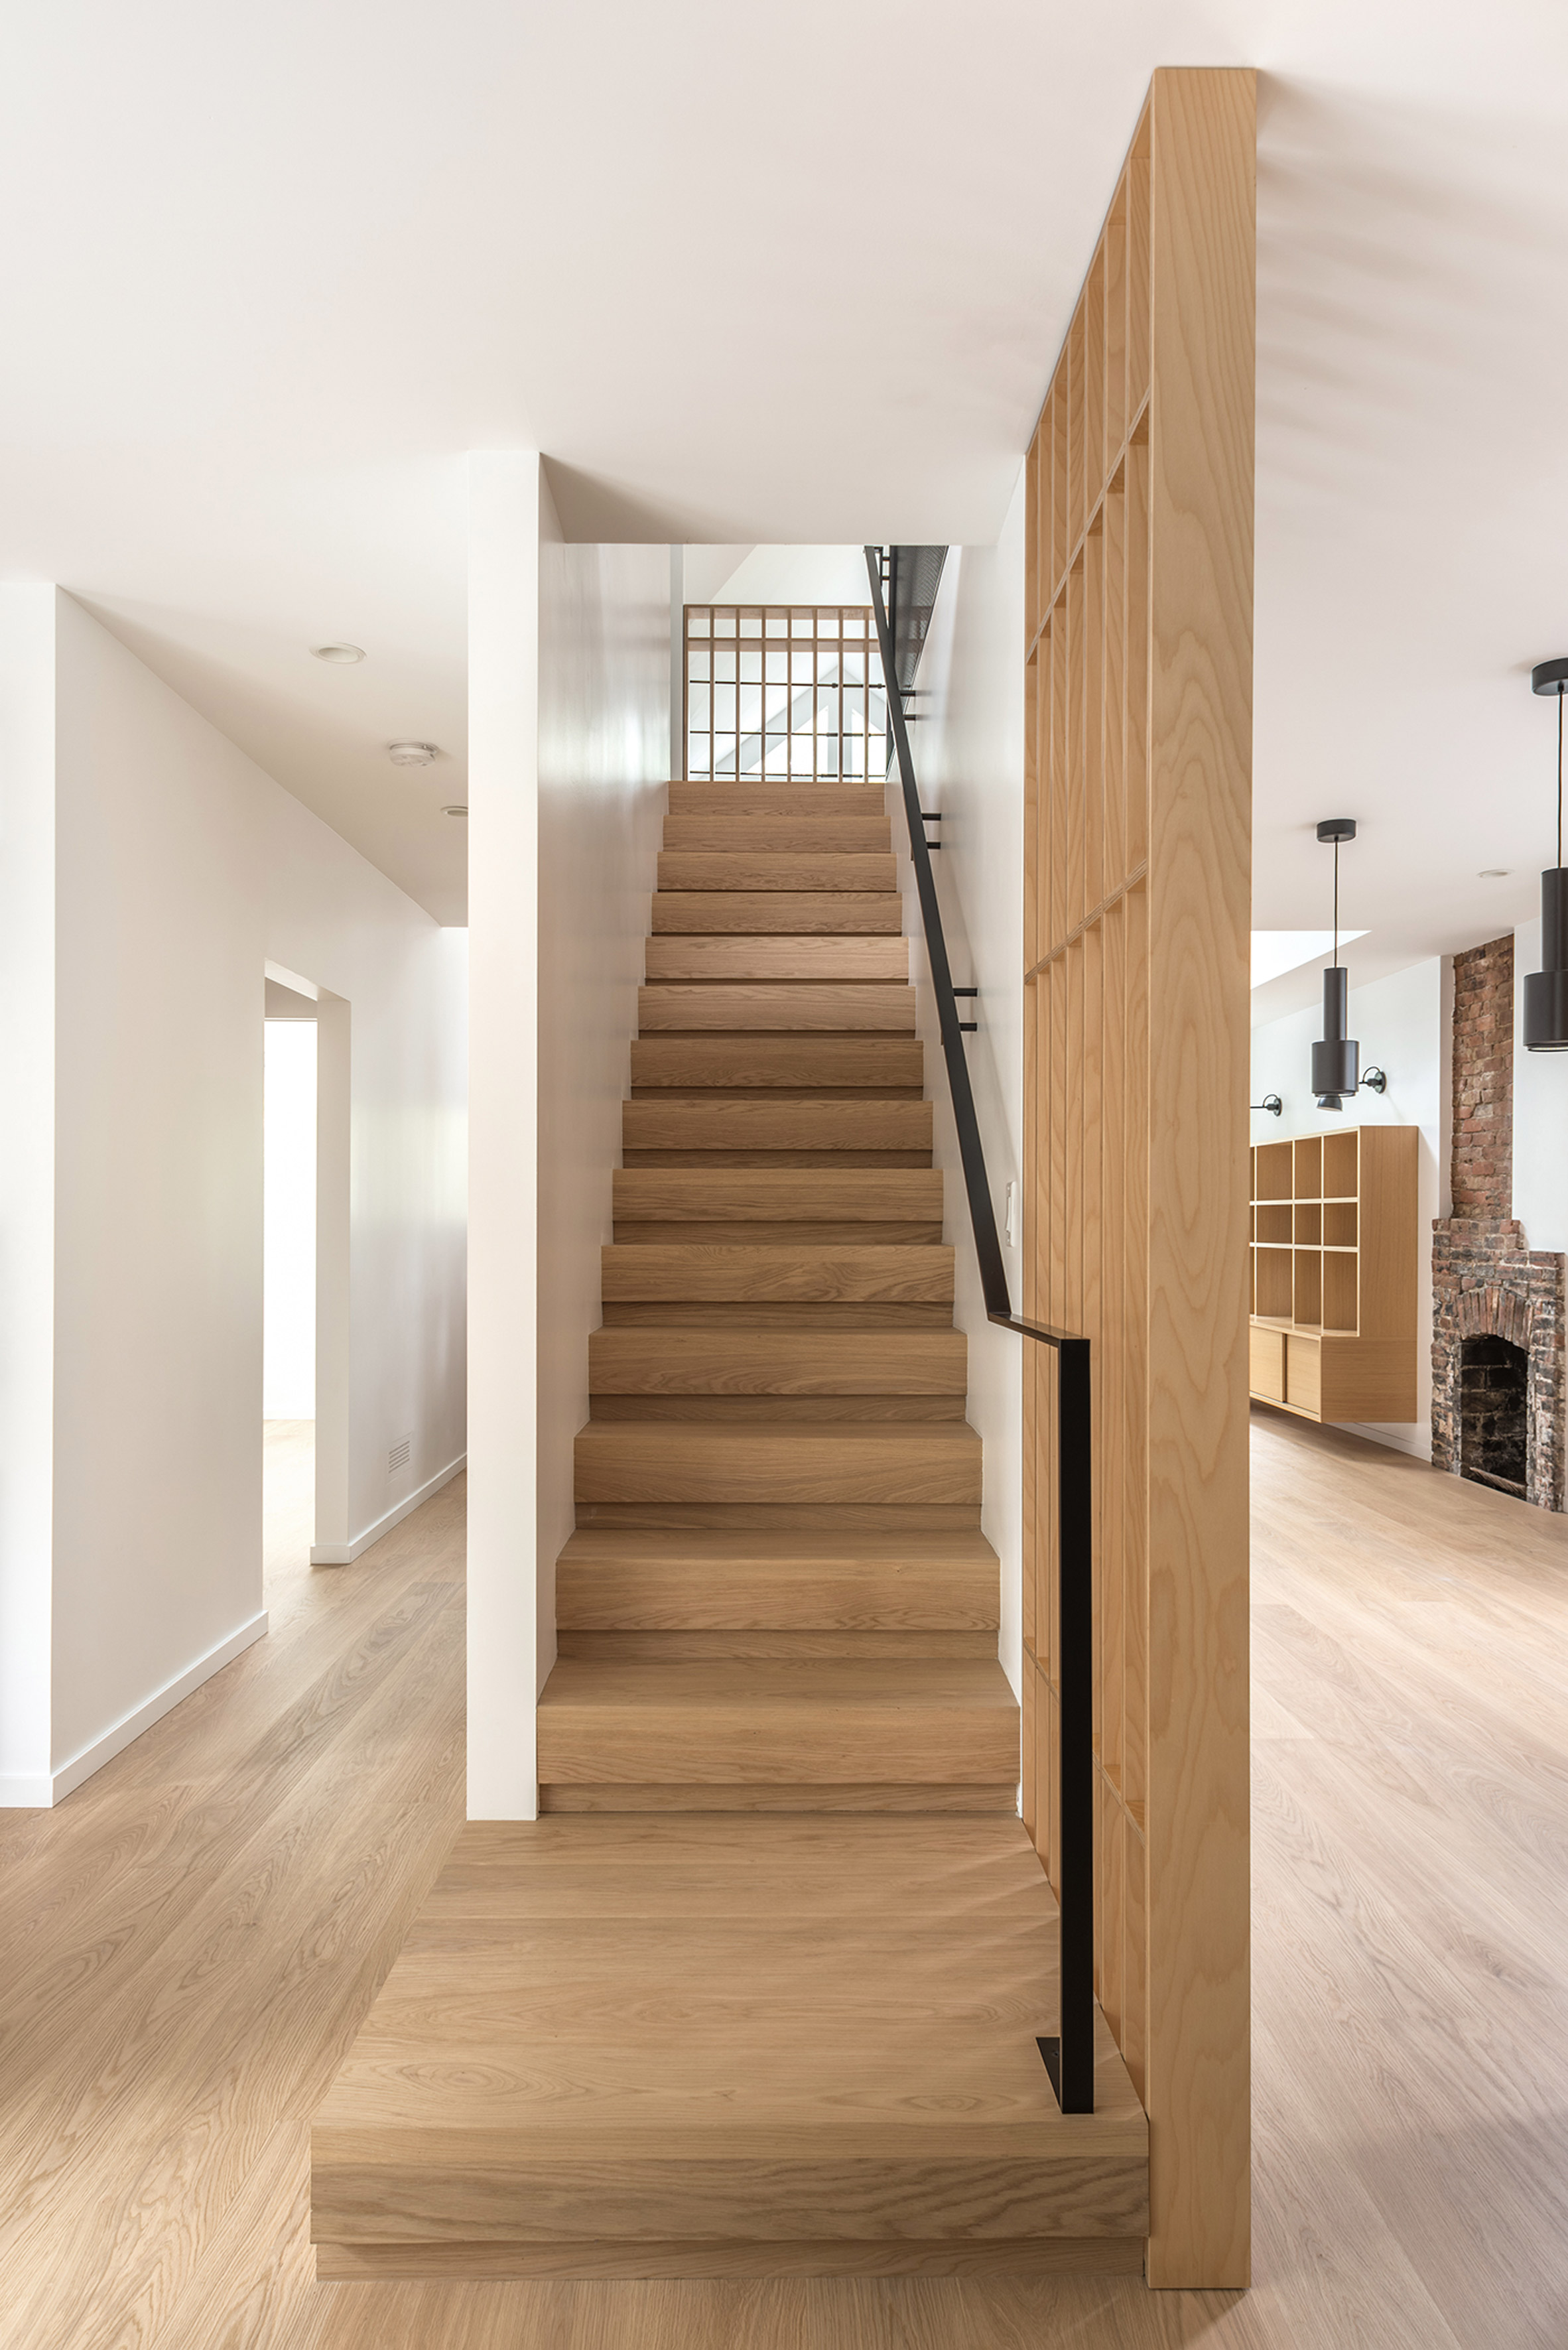 Yew House by Campos Studio and Tom Chung